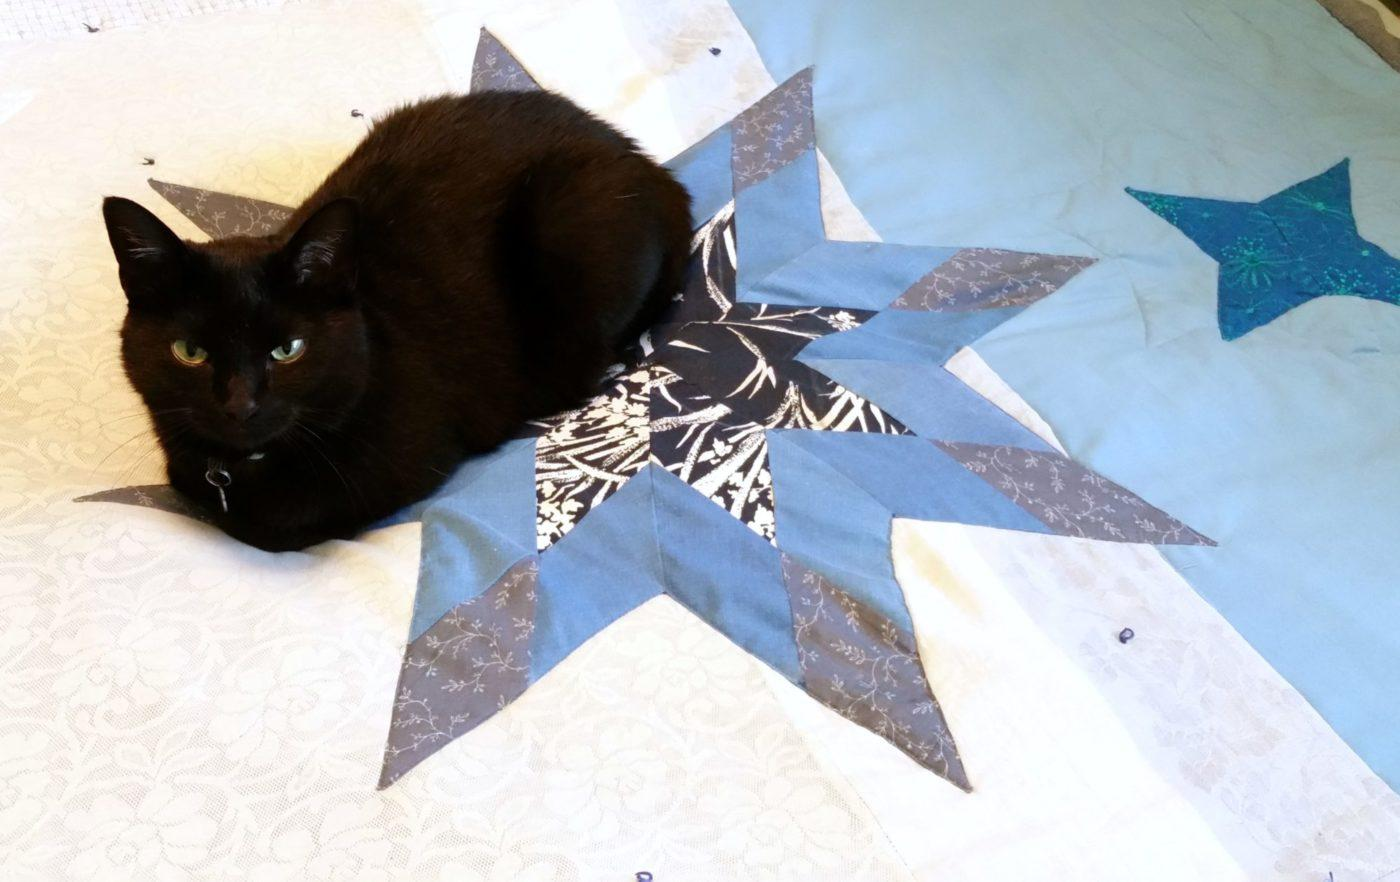 lilo cat on an 8-point star quilt